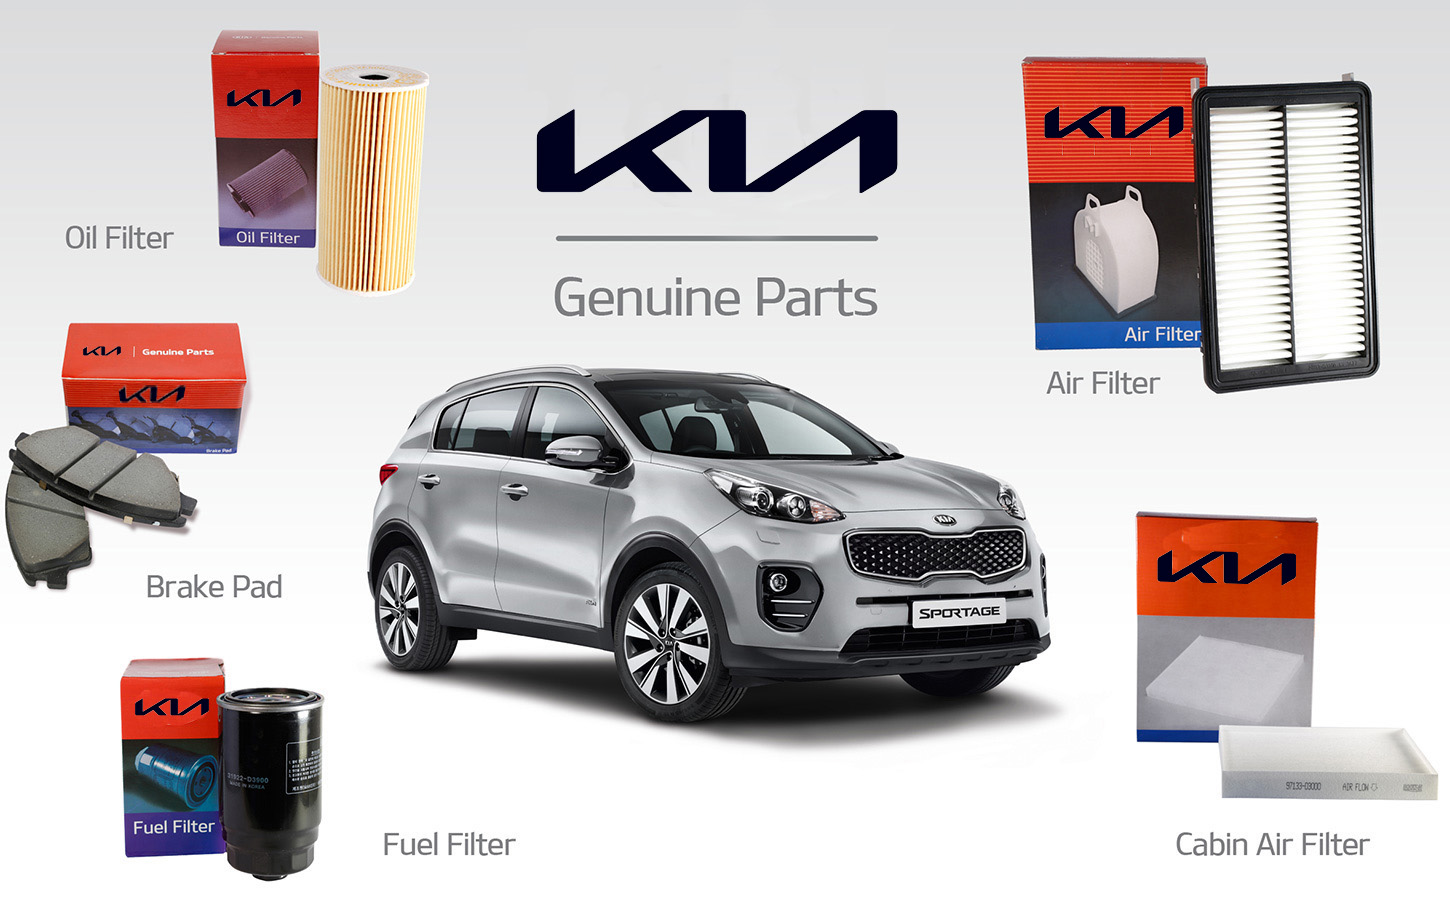 Kia Genuine OEM Parts